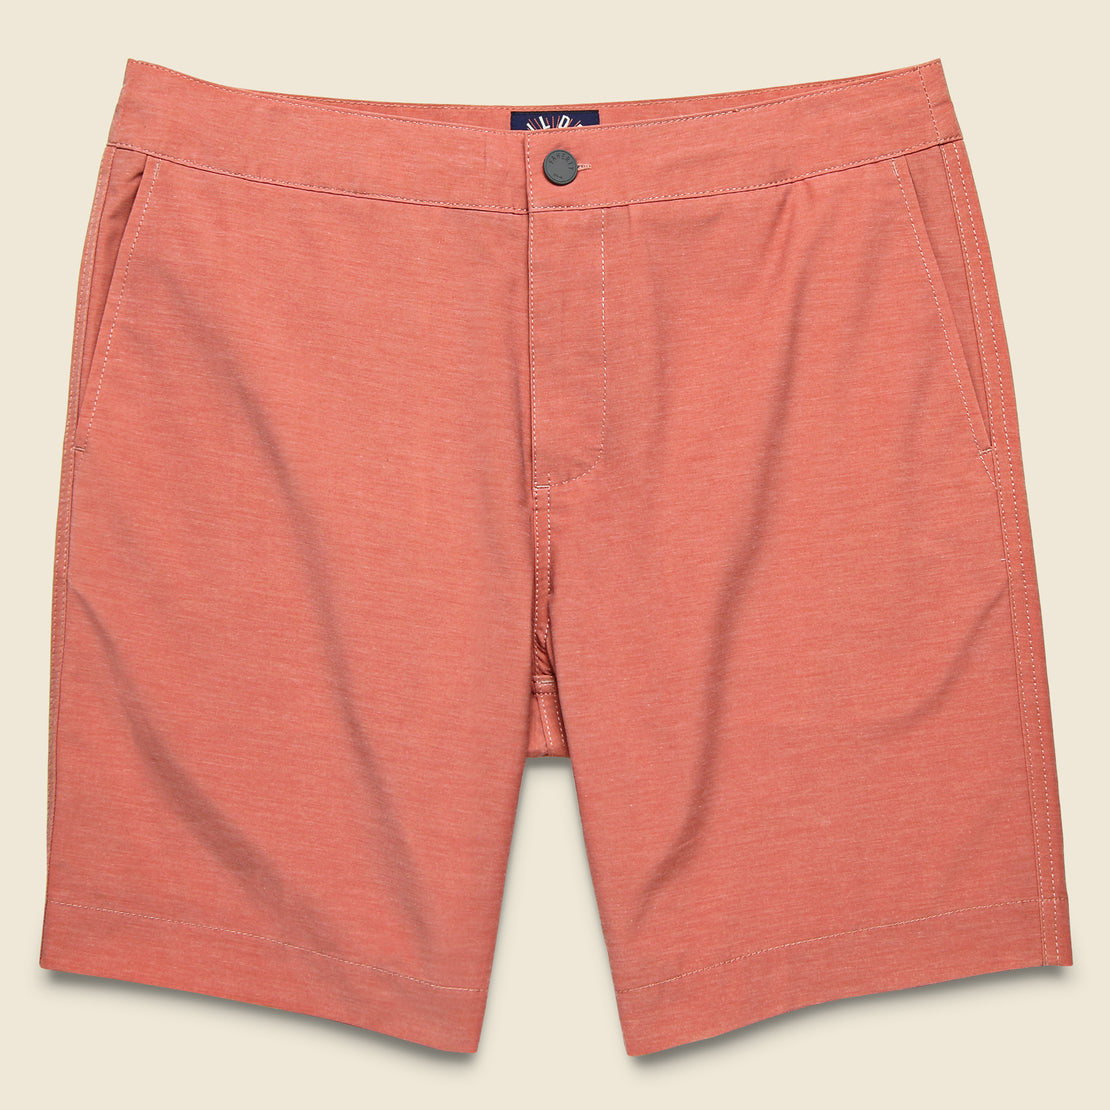 Faherty All Day Short - Venice Red